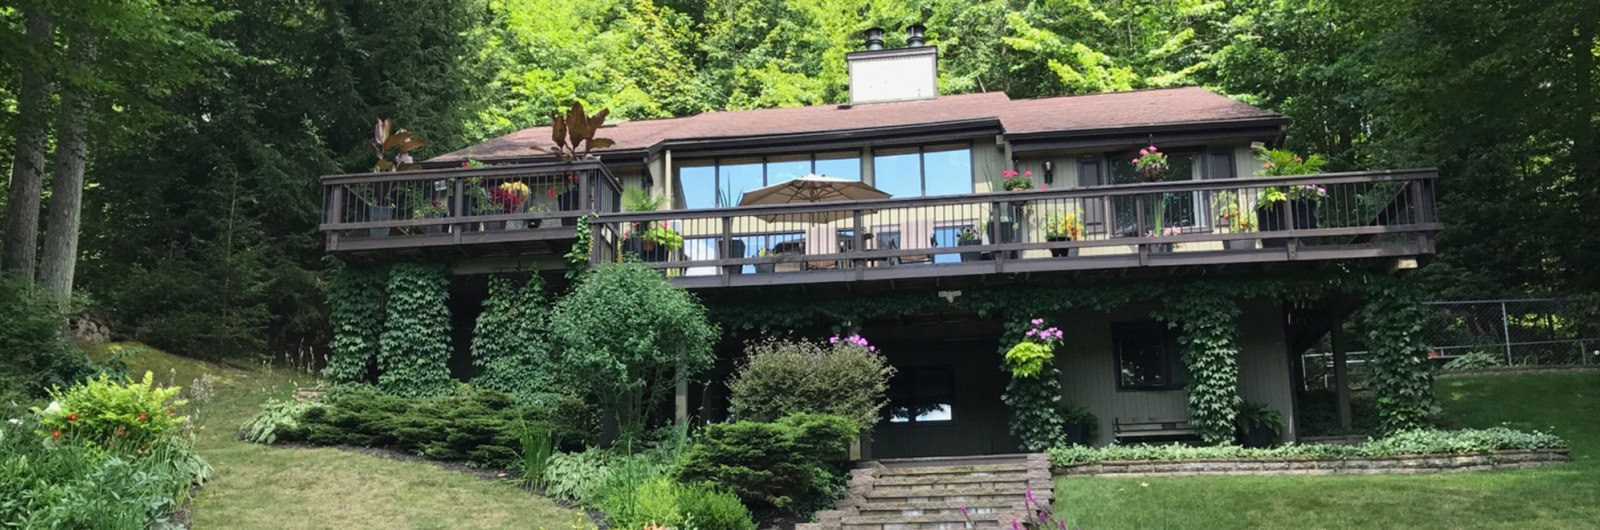 Mountain house with multiple decks surrounded by trees located near Holiday Valley ski resort in New York